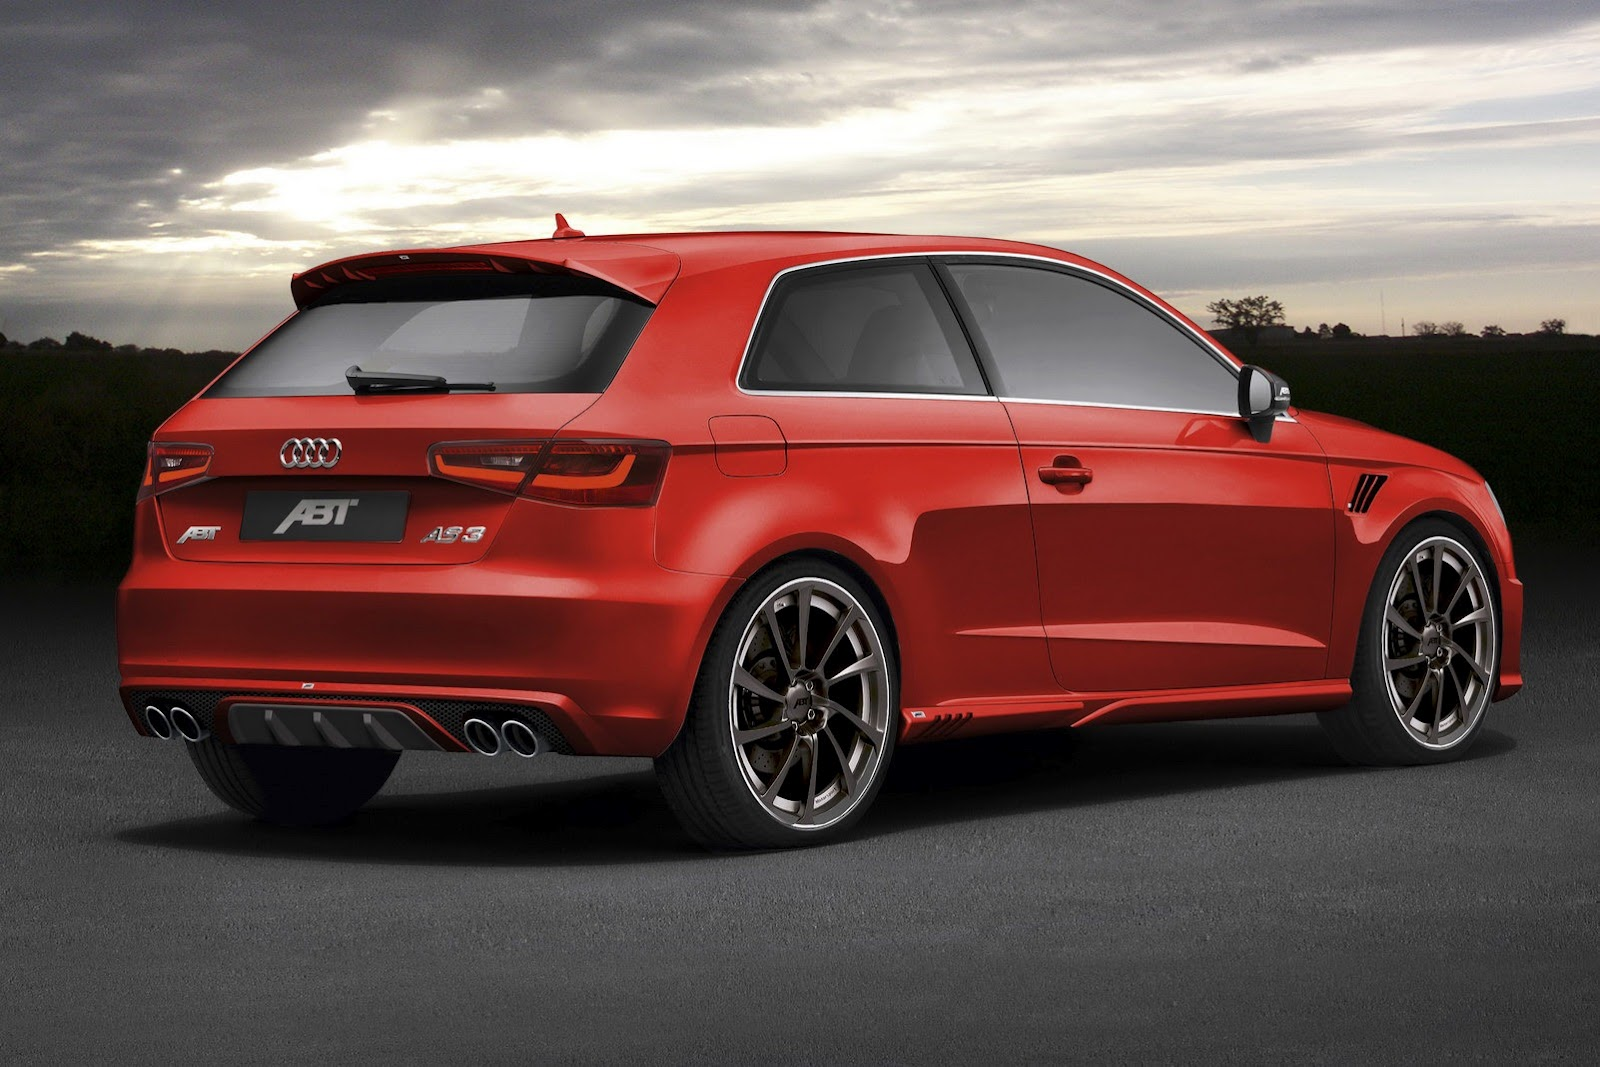 abt announces 2013 audi a3 tuning program autoevolution. Black Bedroom Furniture Sets. Home Design Ideas